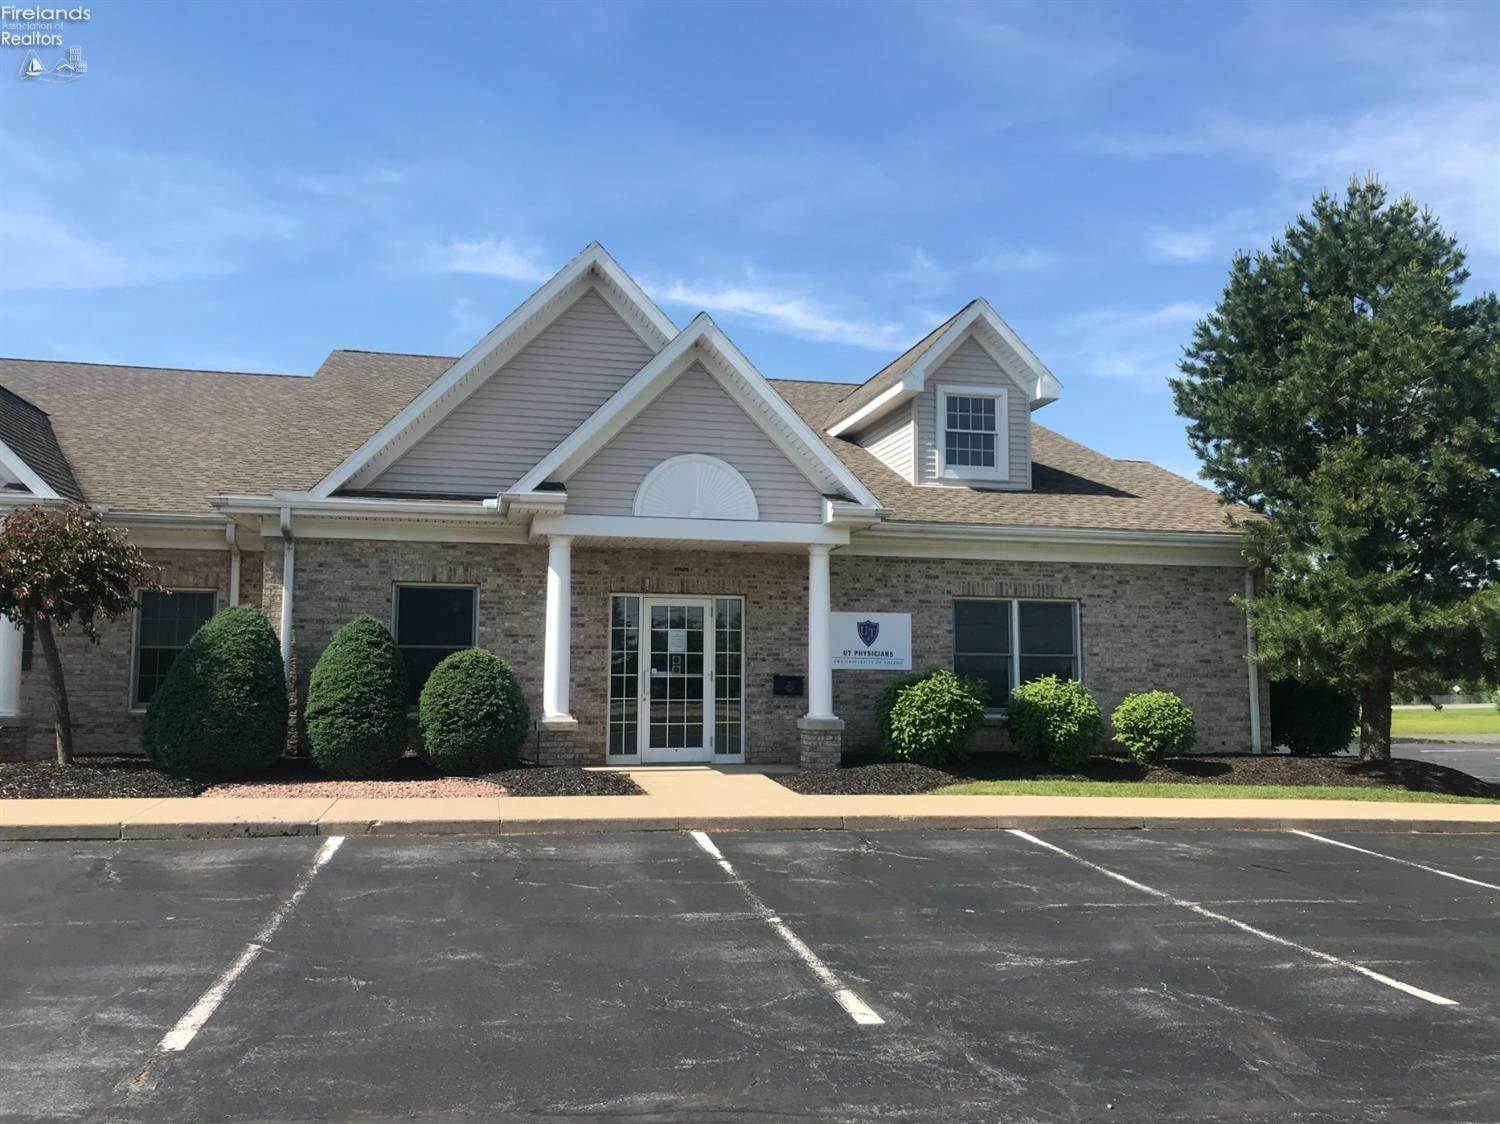 Commercial for Sale at 1355 Main Street Bellevue, Ohio 44811 United States